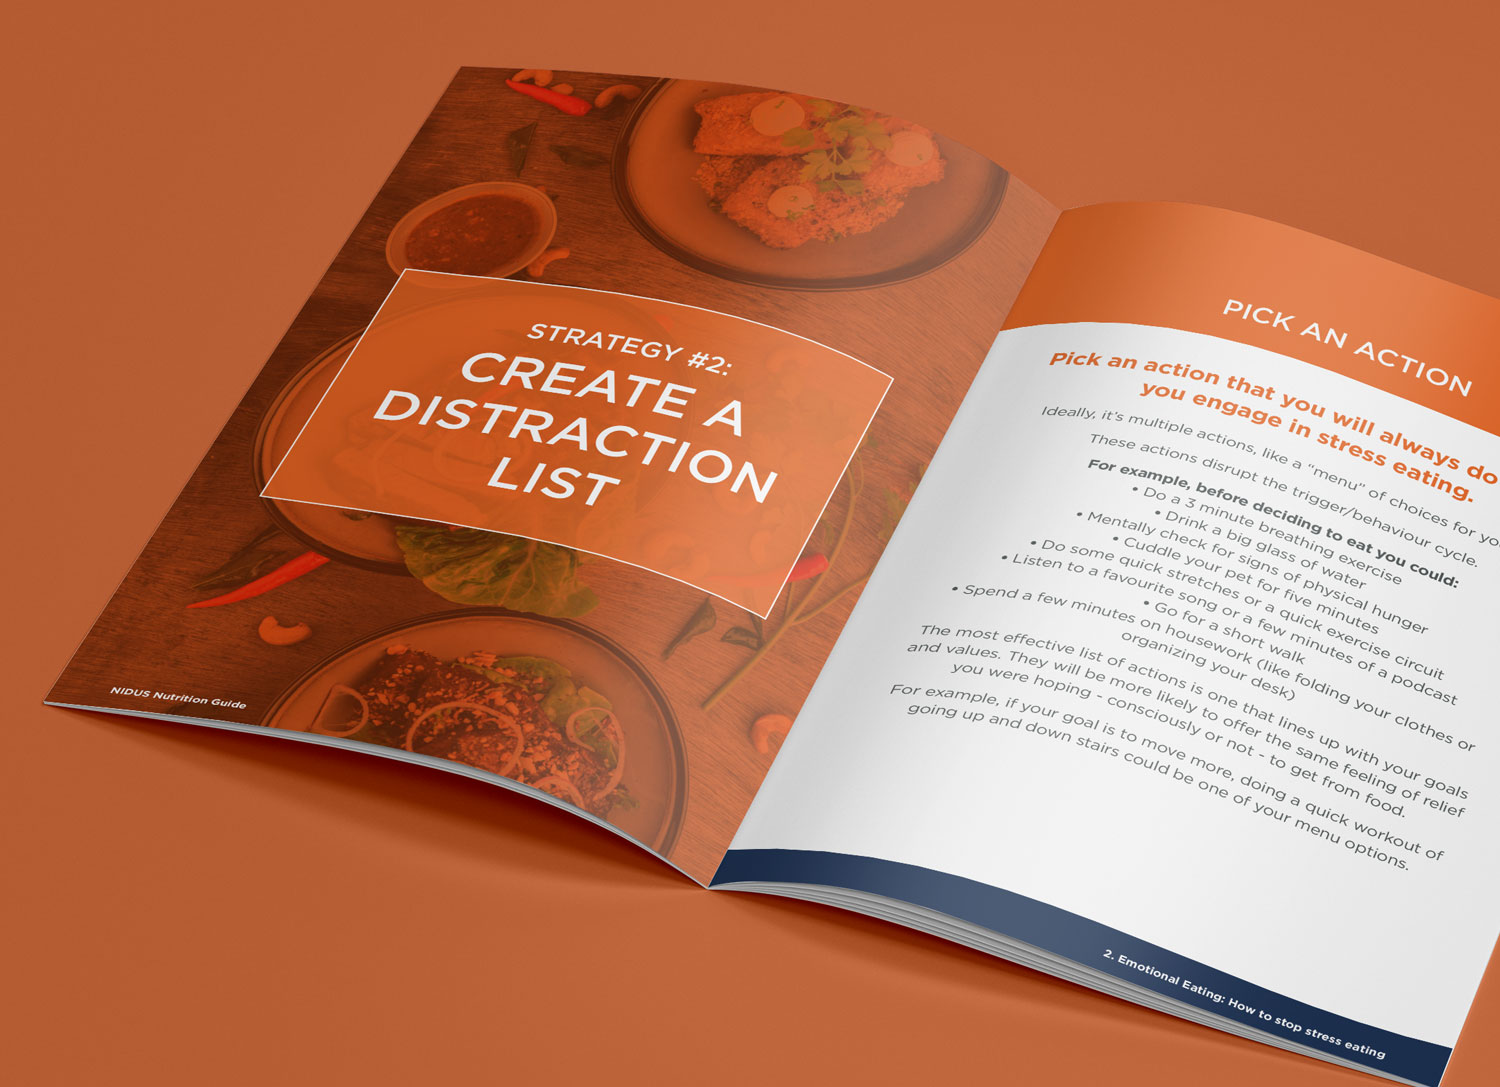 Nidus Rebrand - Nutrition Learning Guides - by My Name is Dan